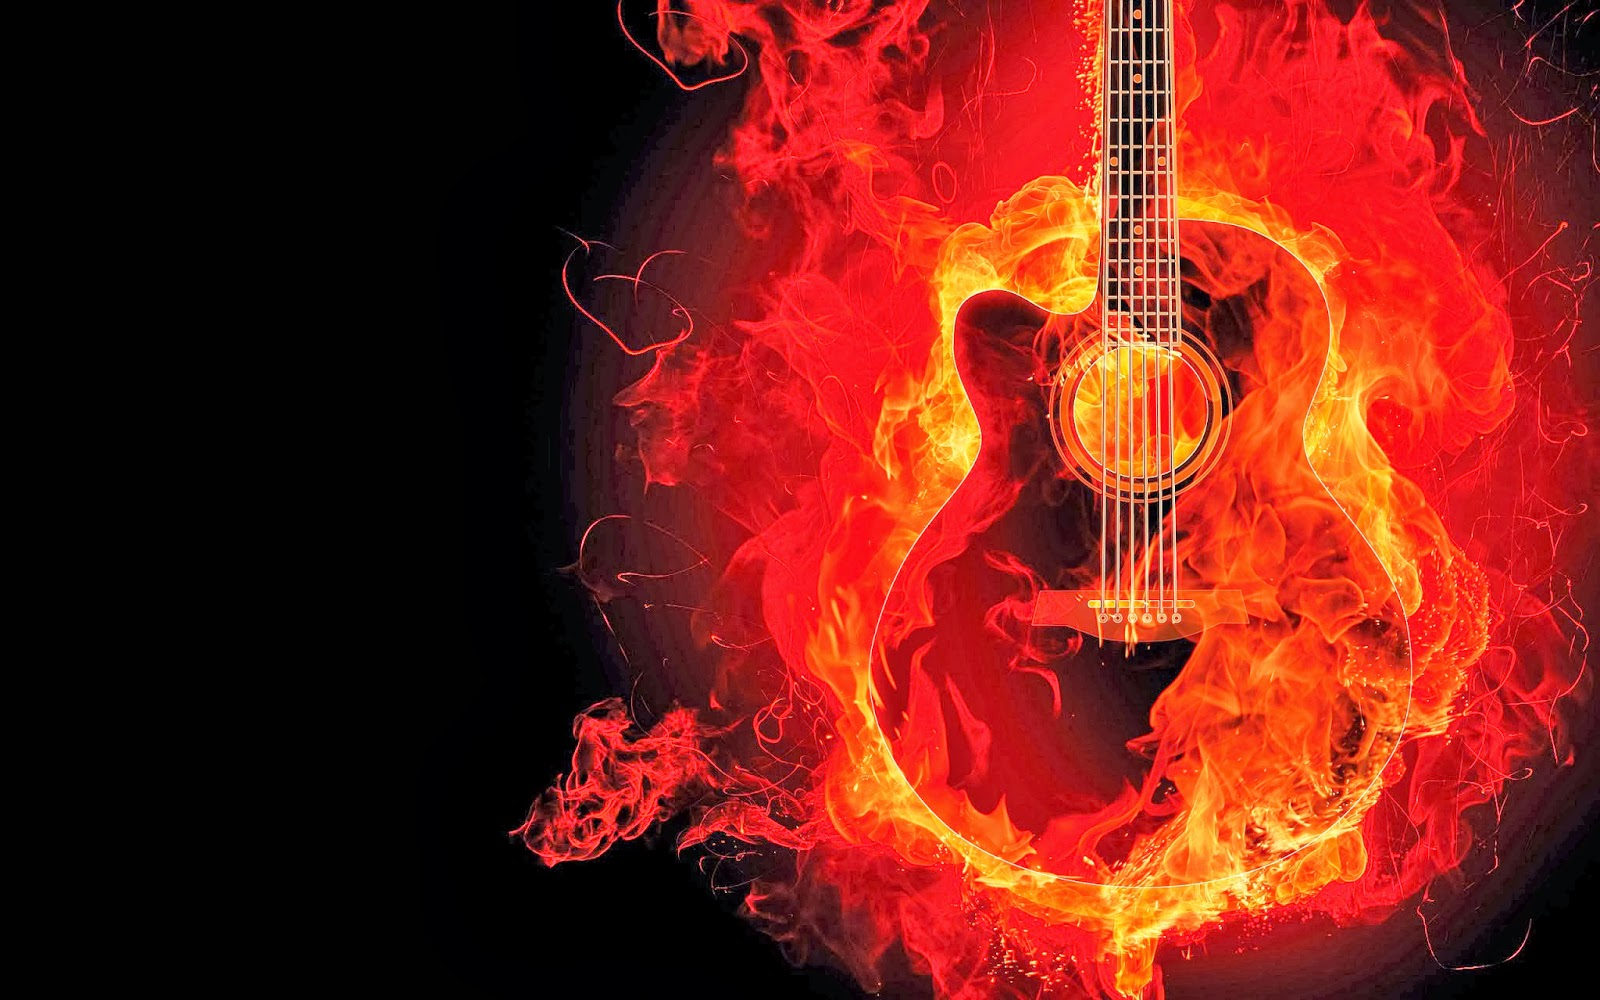 guitar on fire wallpapers - photo #12